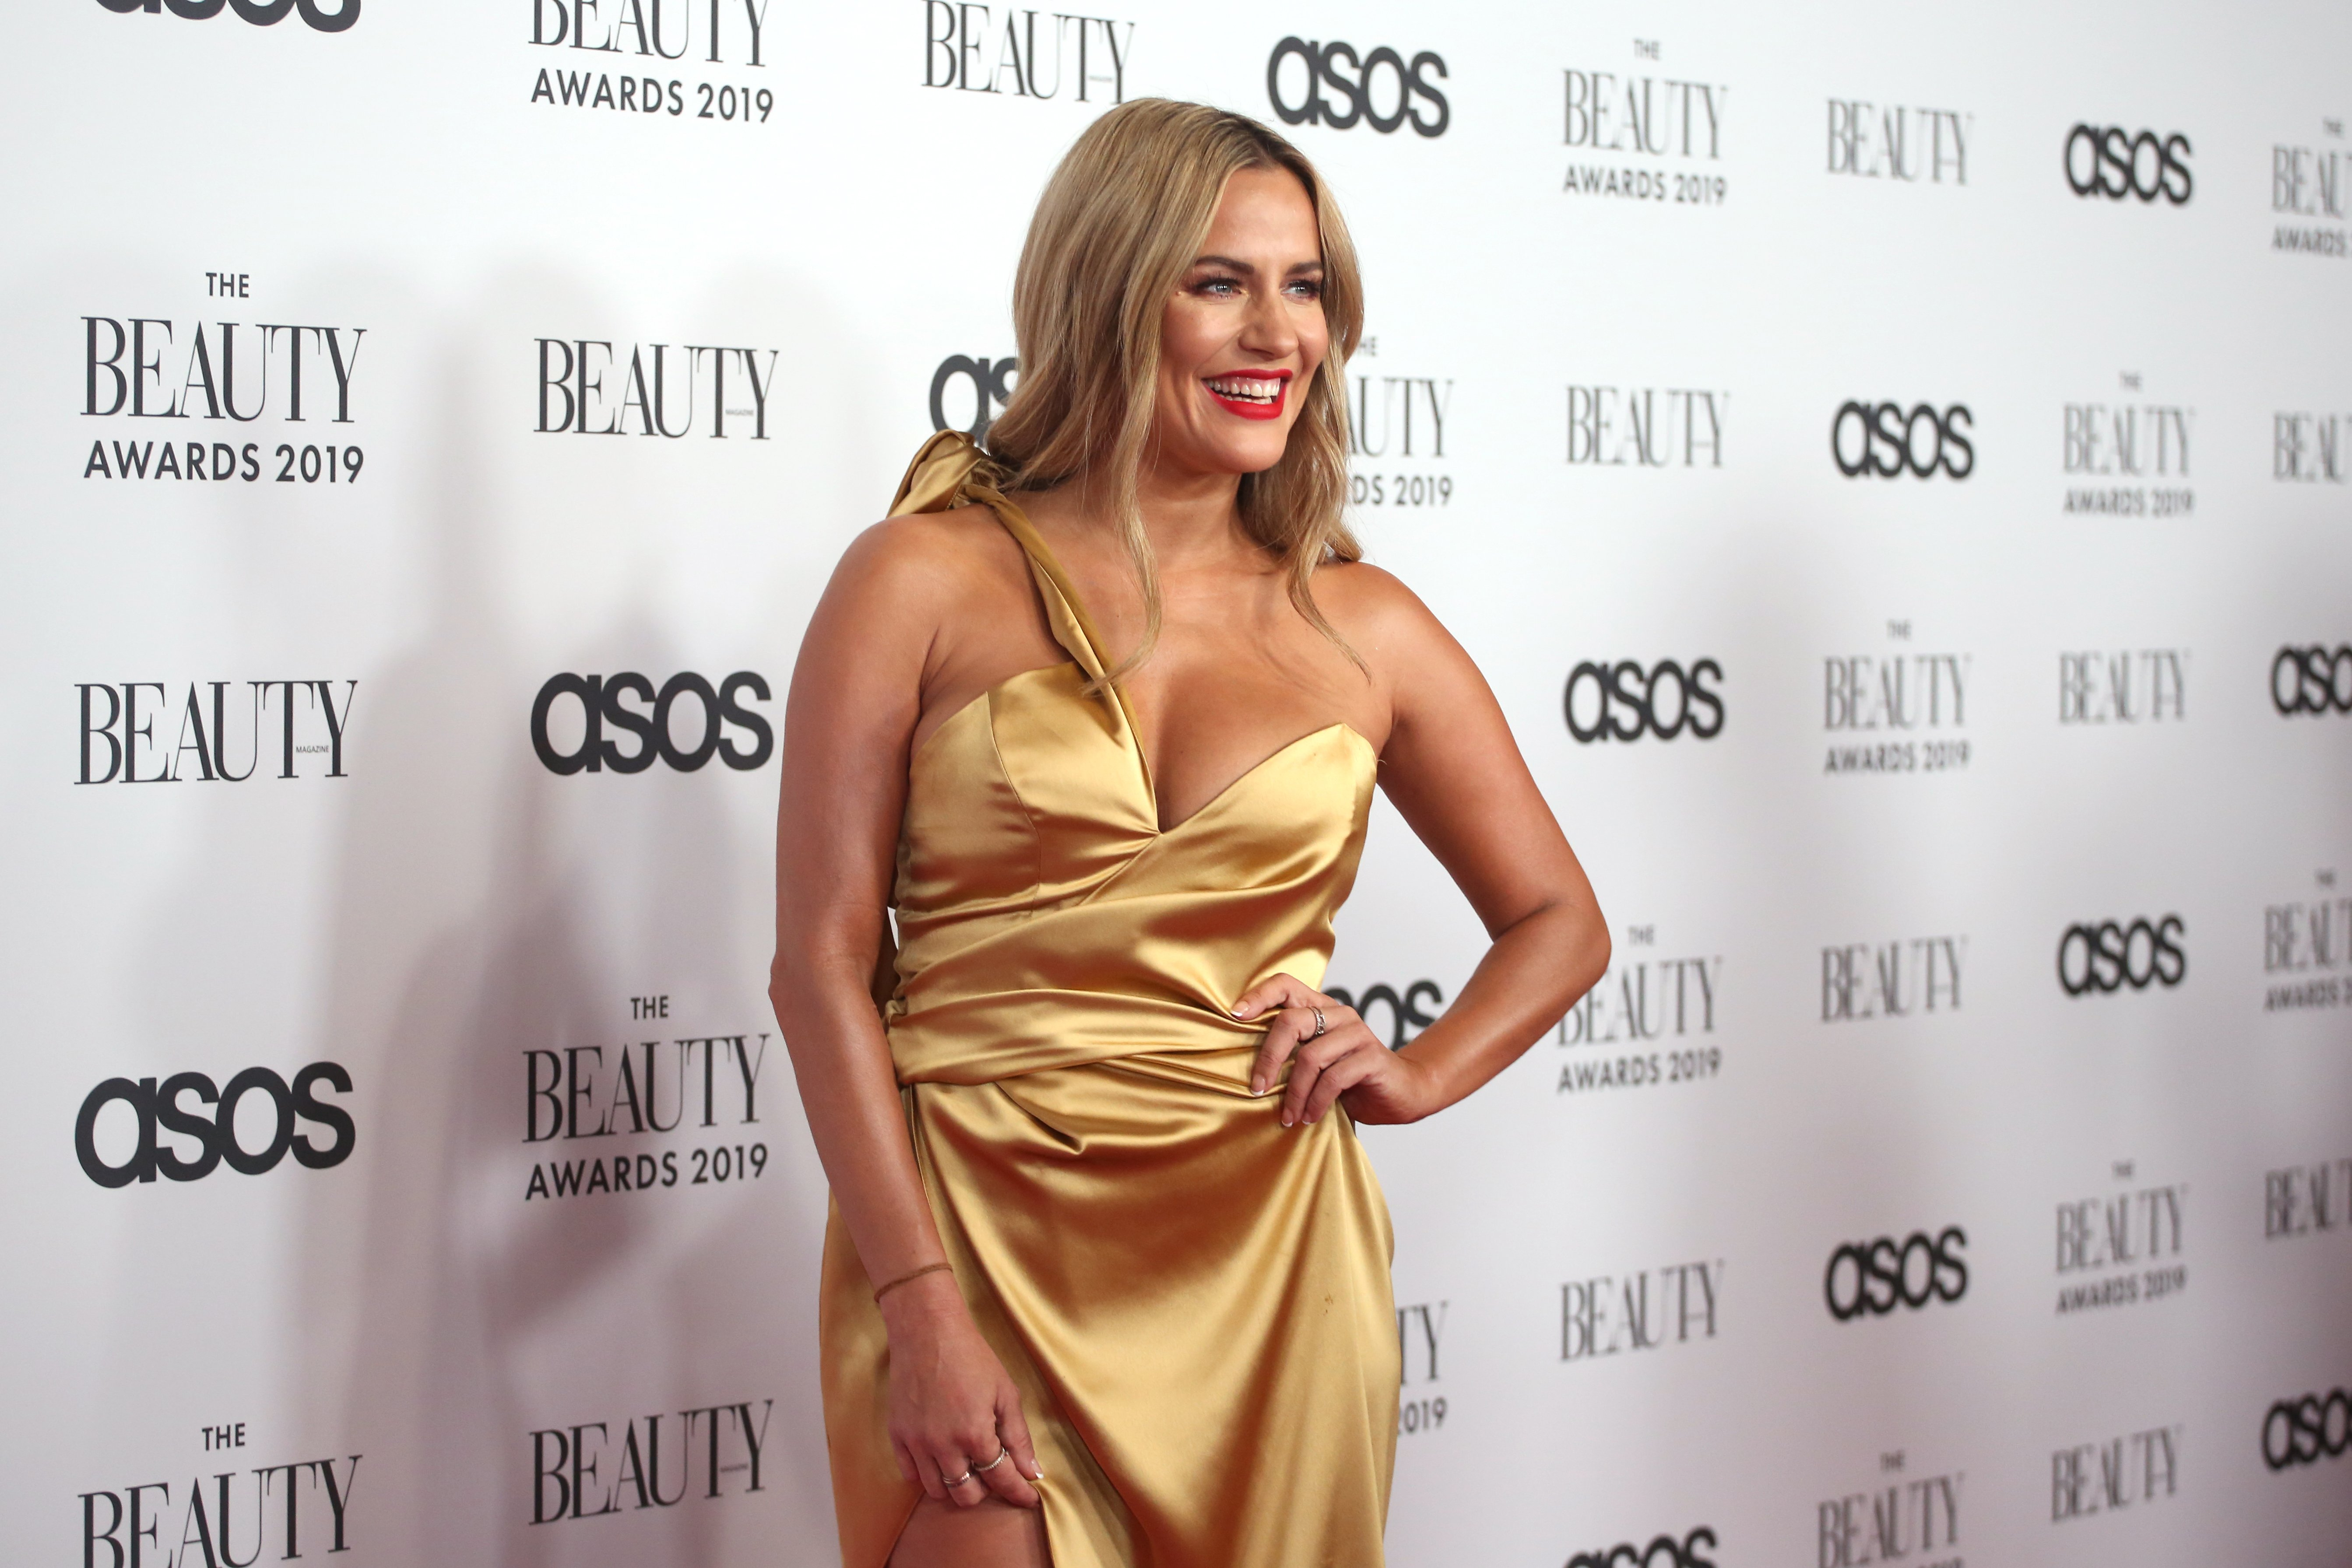 Caroline Flack at The Beauty Awards 2019 on November 25, 2019 in London, England | Photo: Lia Toby/Getty Images